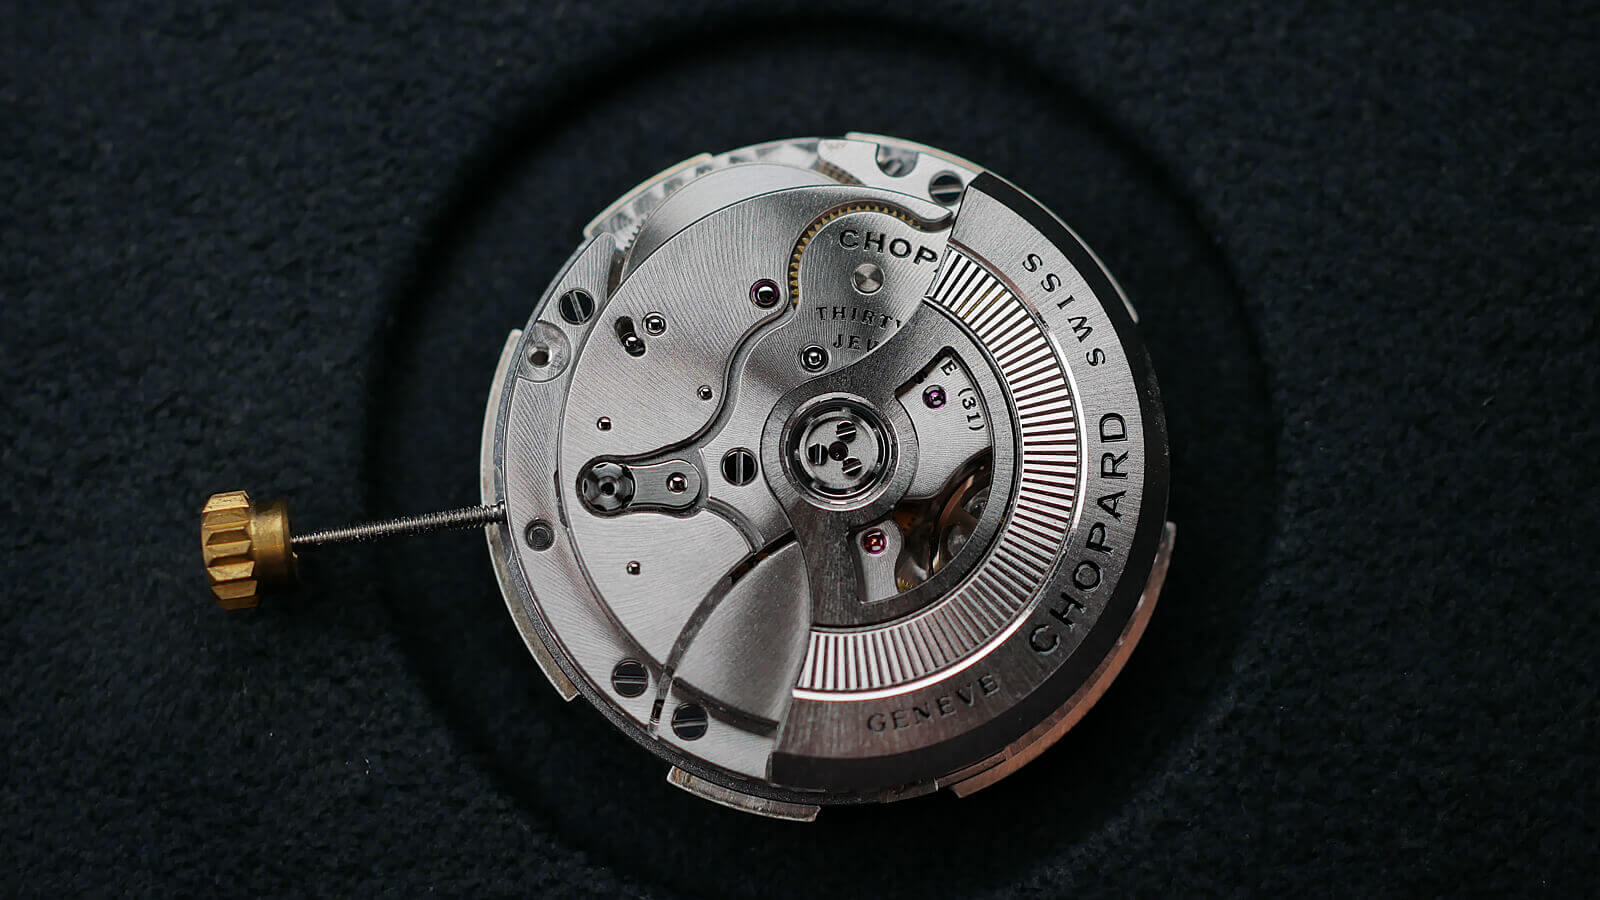 Chopard Alpine Eagle movements